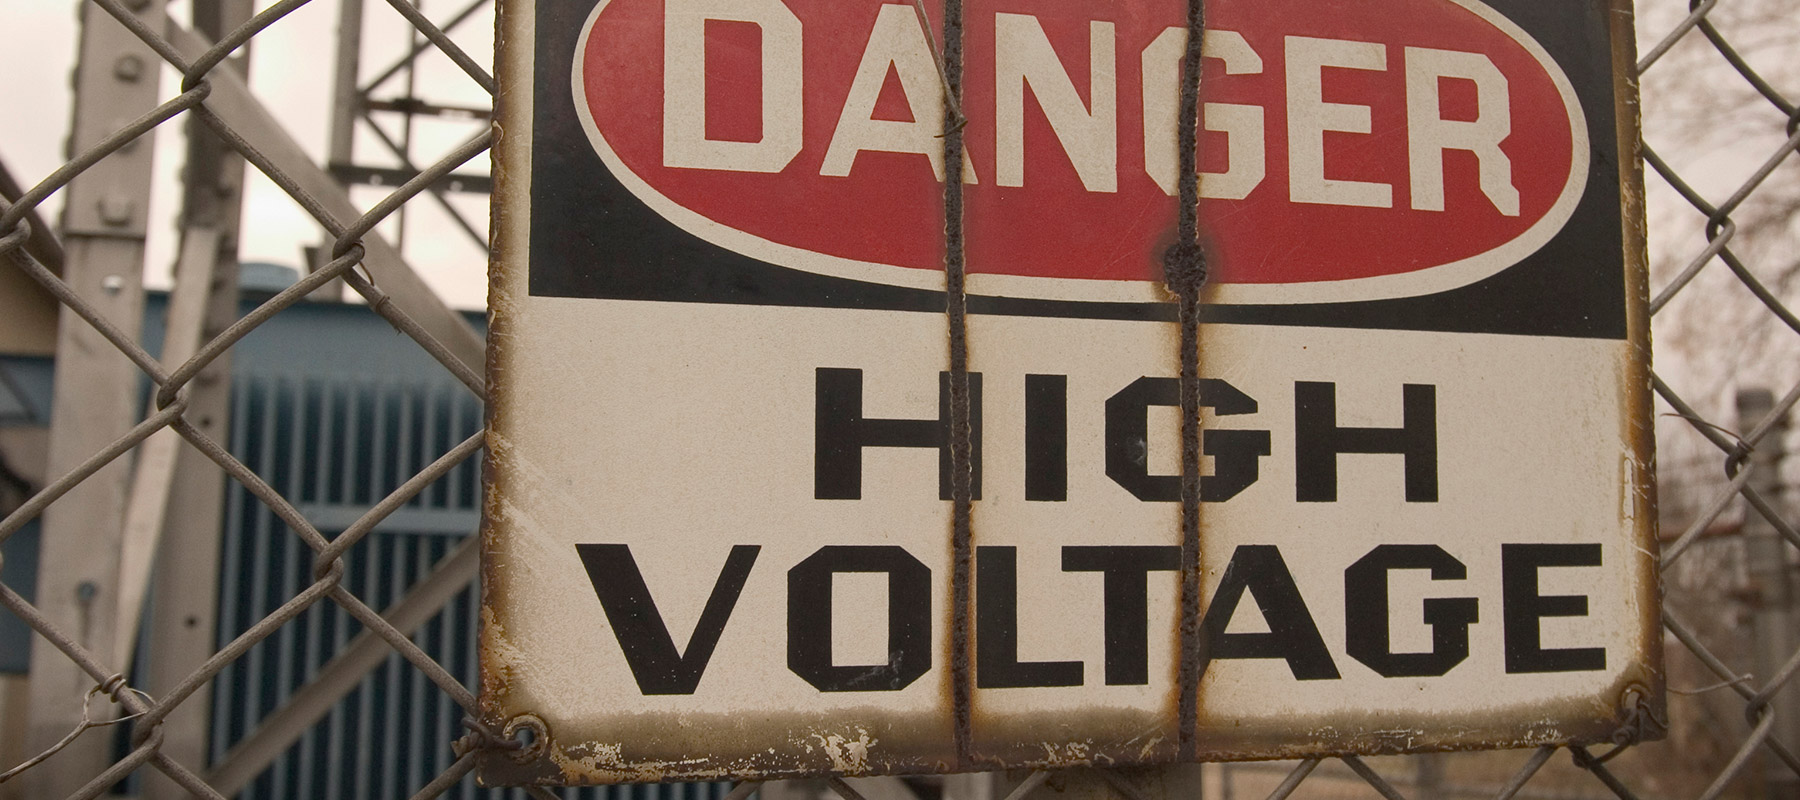 High Voltage Switching Operations Hvso Ohsa Occupational Health